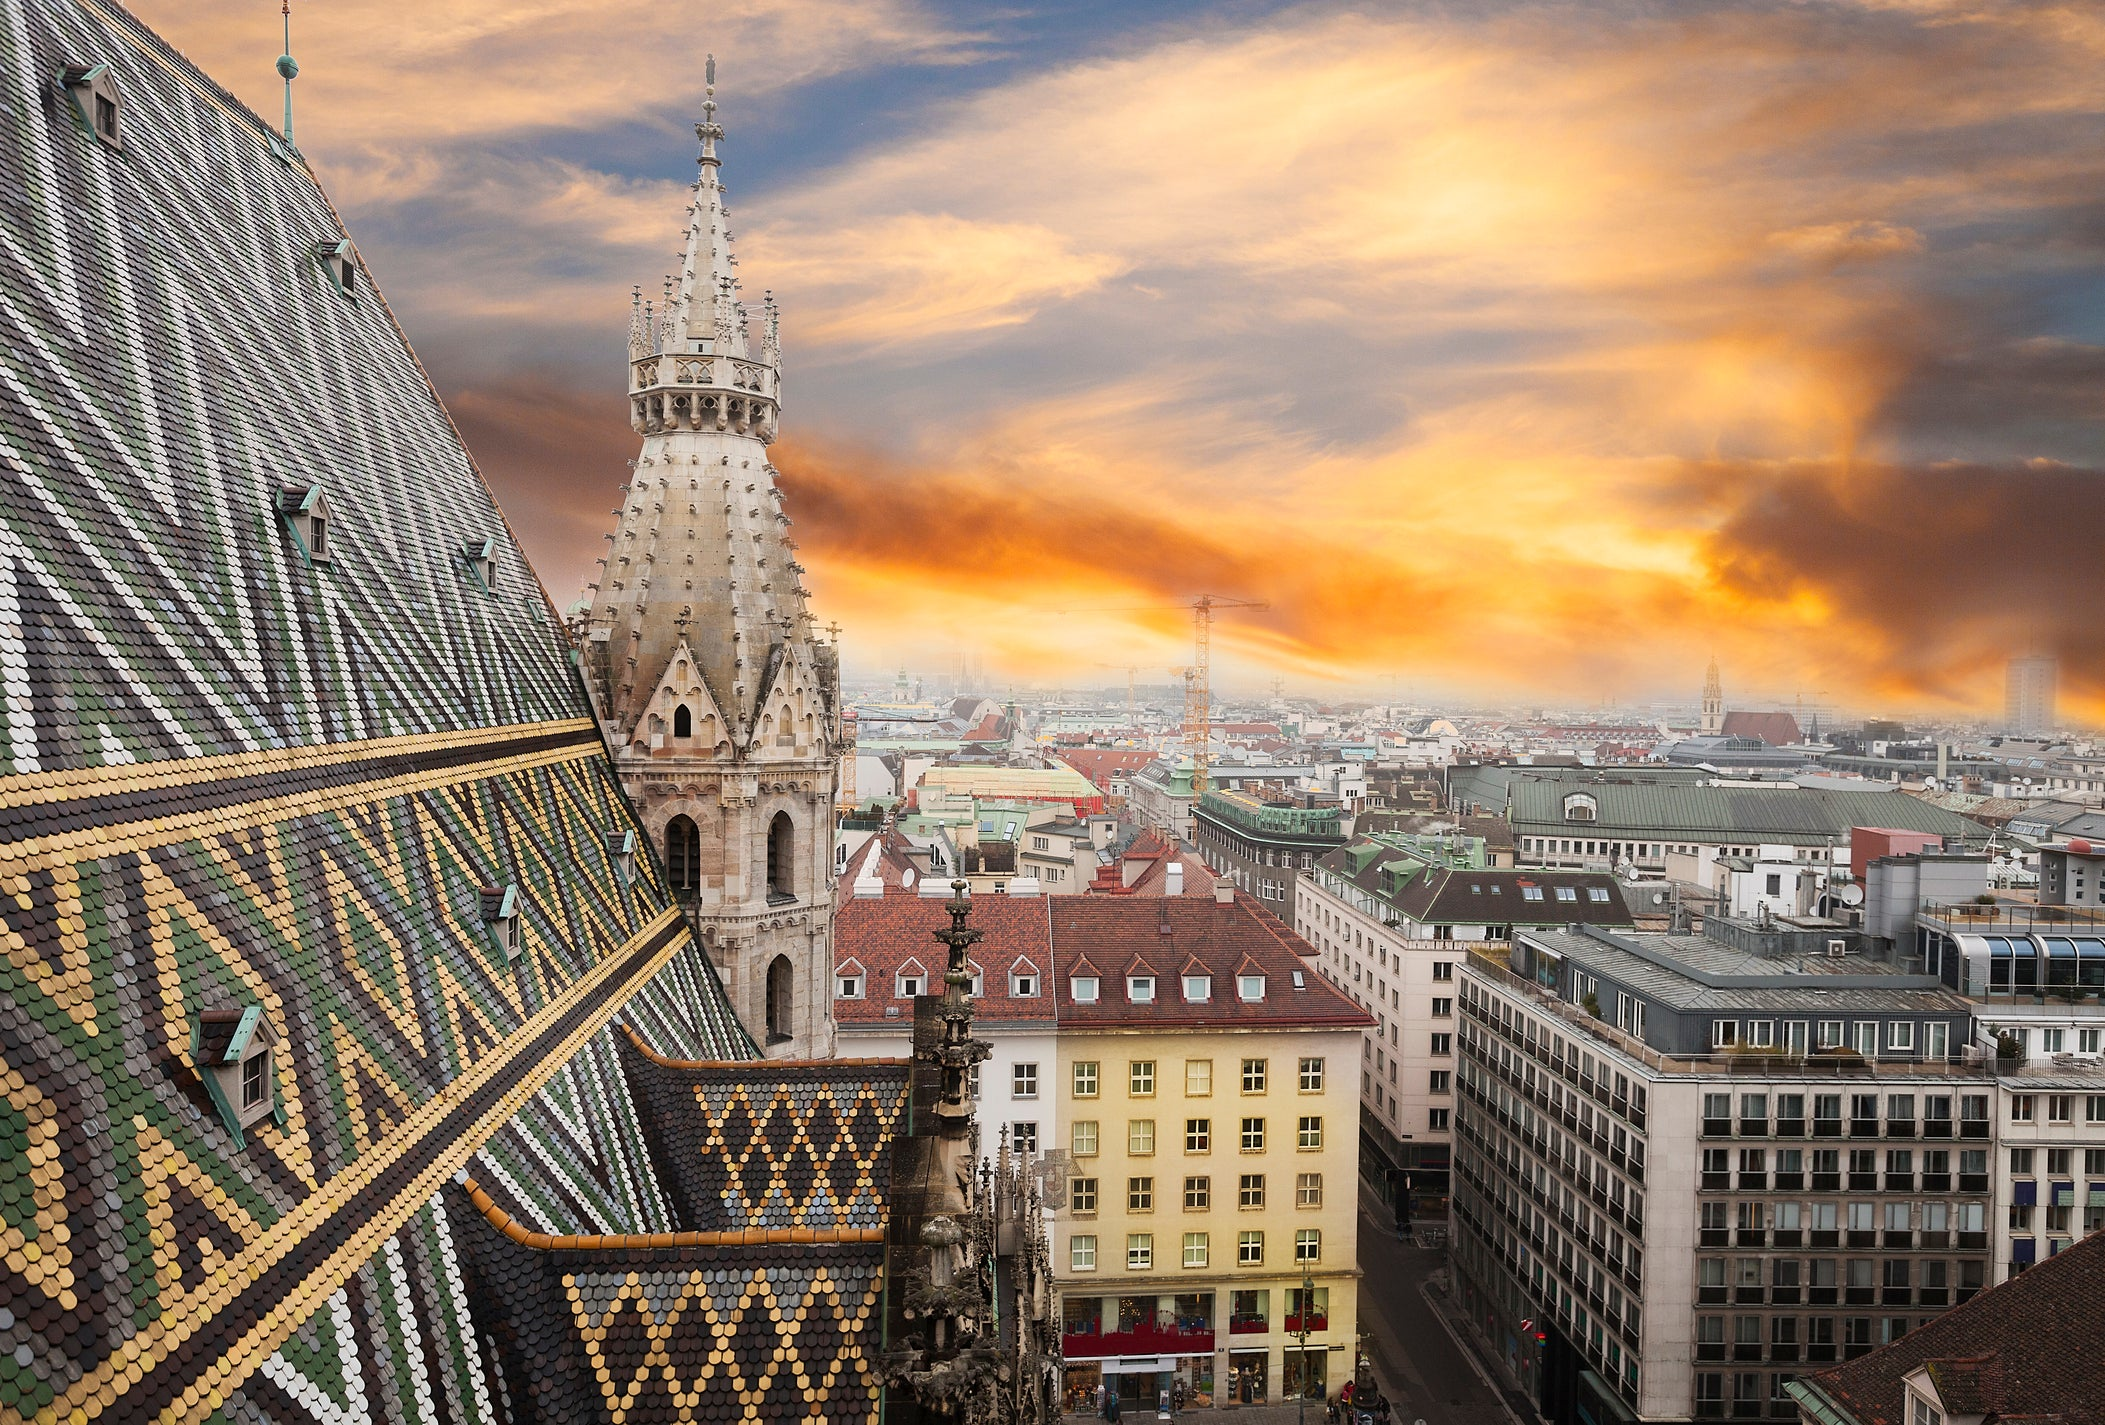 Vienna named best city to live in for ninth year running